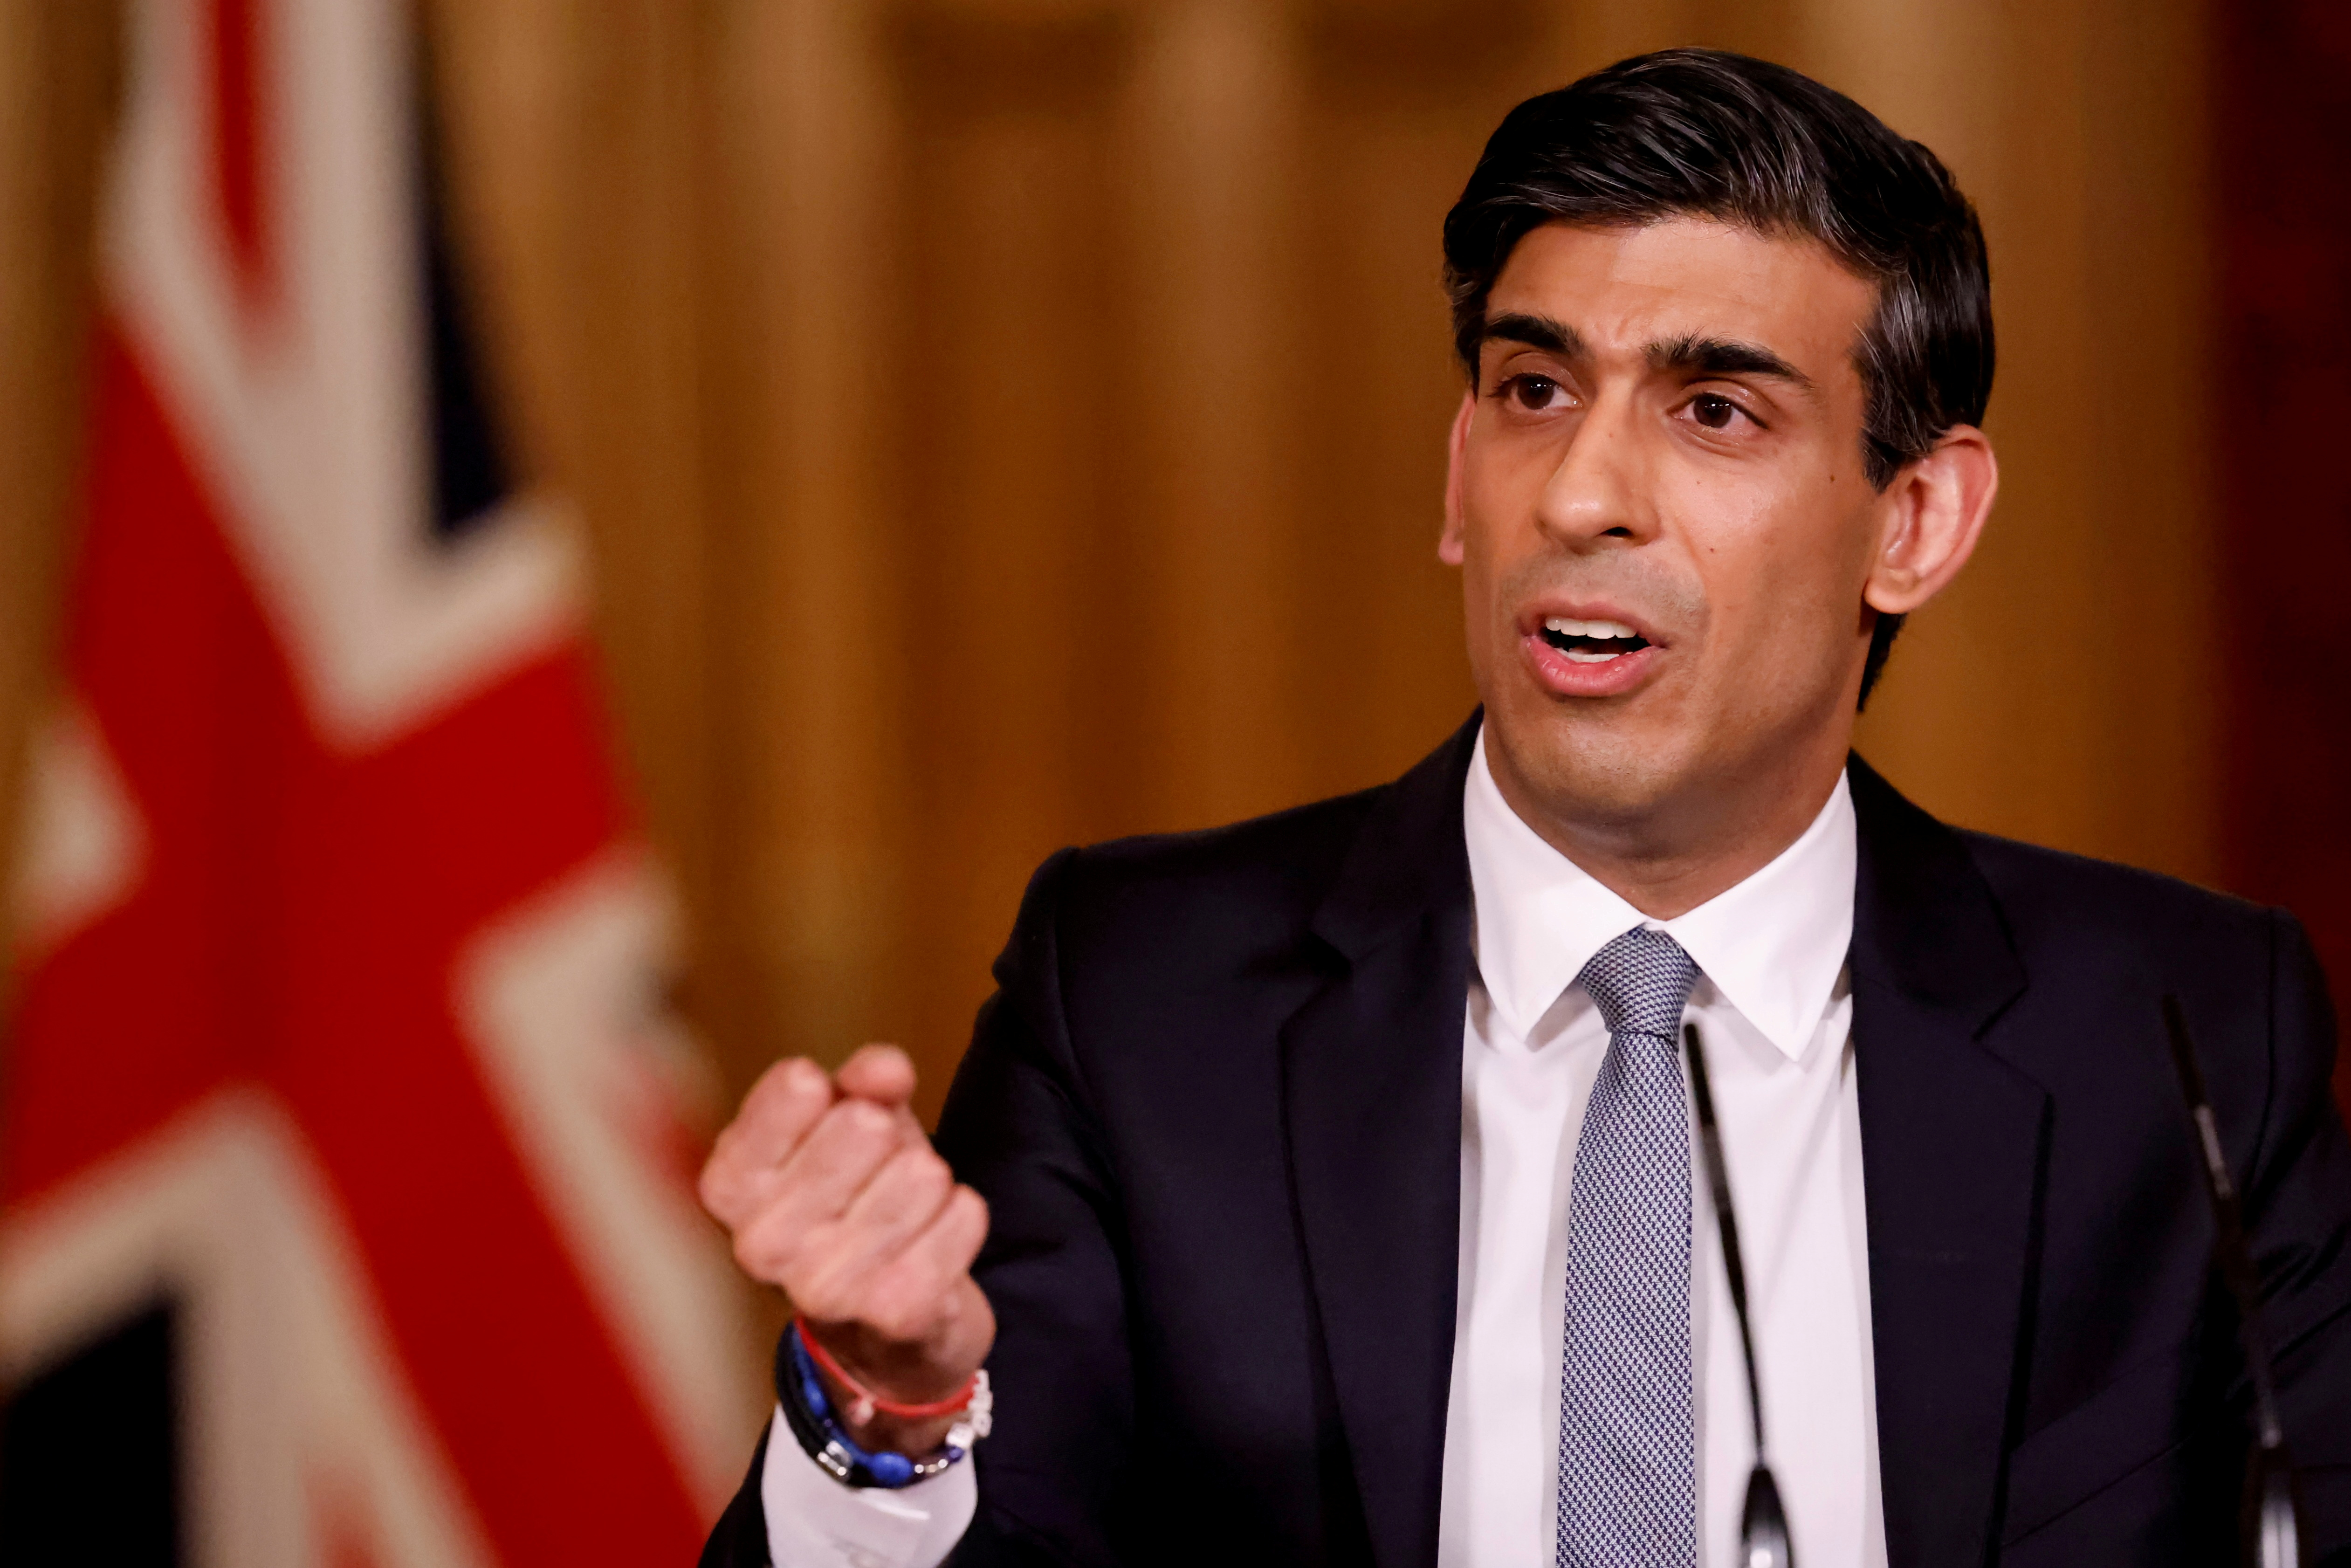 Britain's Chancellor of the Exchequer (finance minister) Rishi Sunak attends a virtual press conference inside 10 Downing Street in central London, Britain March 3, 2021. Tolga Akmen/Pool via REUTERS/File Photo